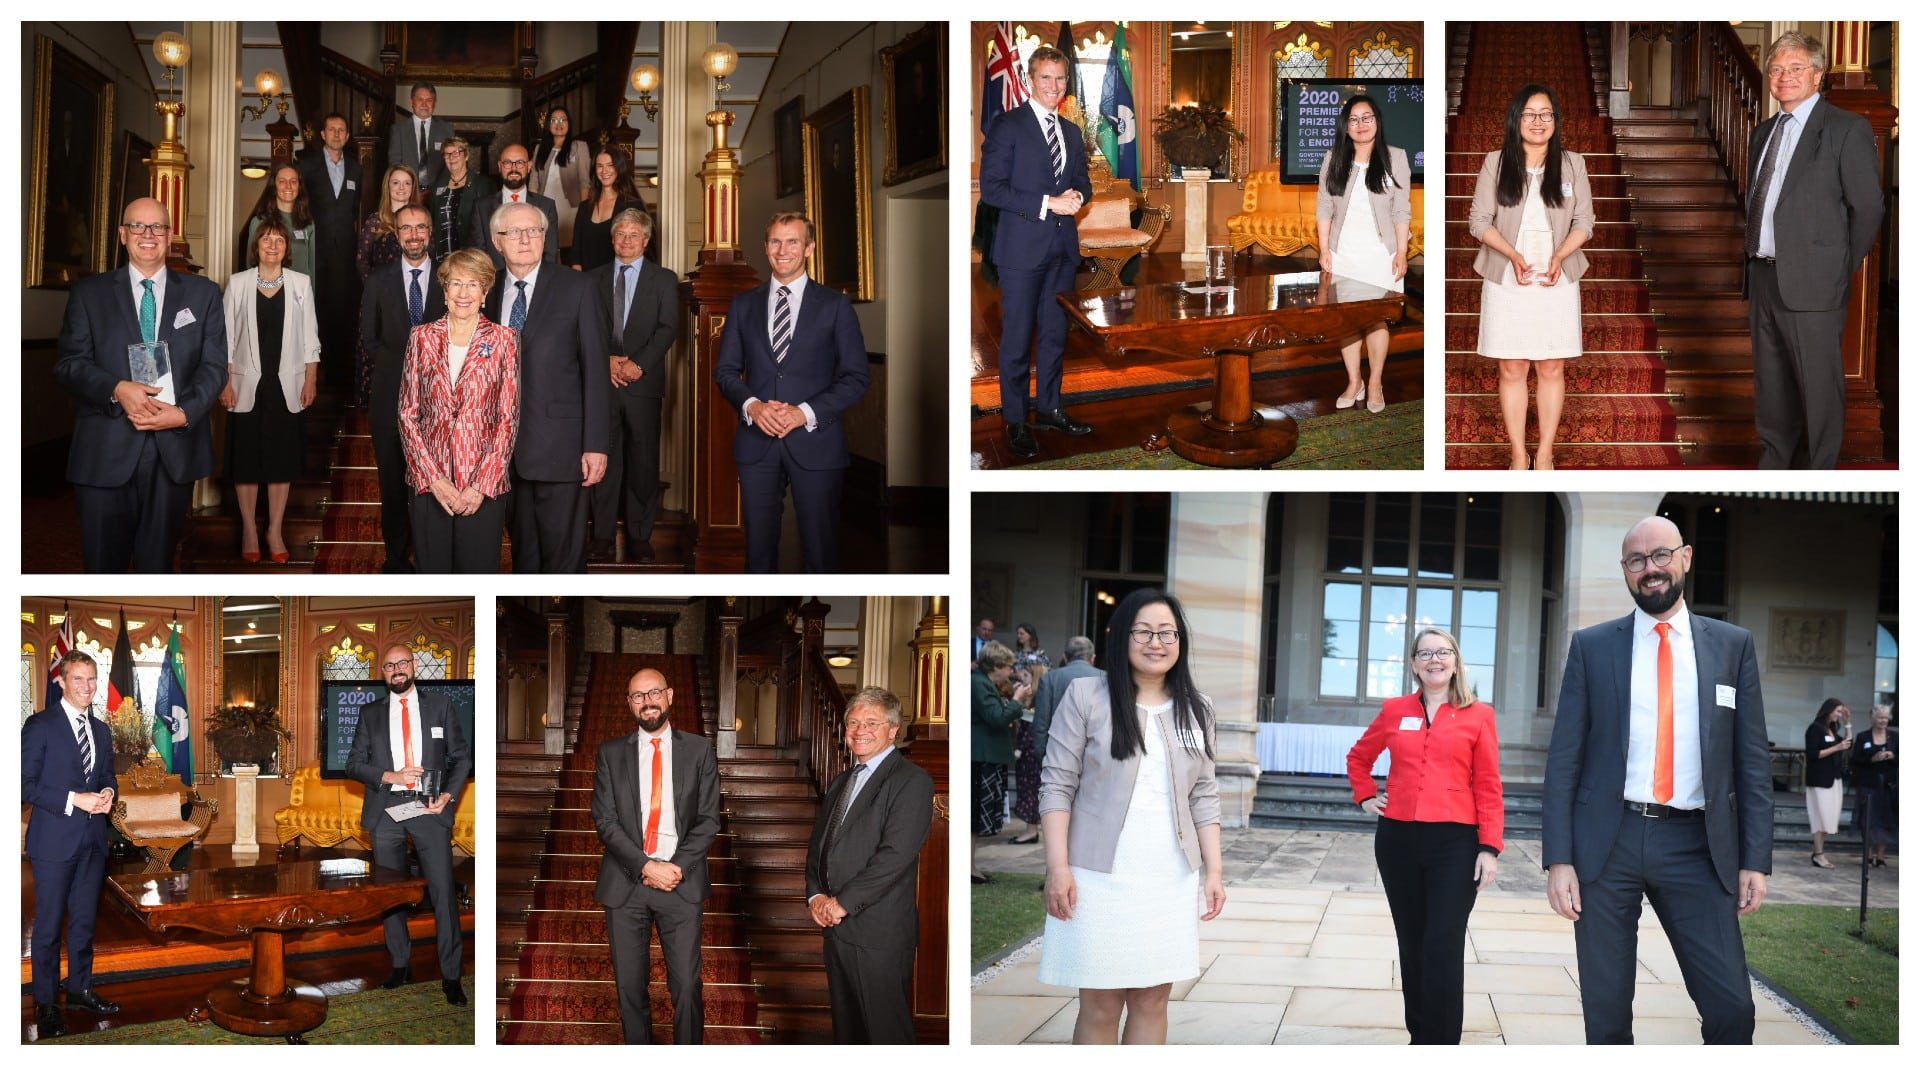 Collae of photos from the 2020 NSW Premier's Prizes for Science and Engineering faturing Zaiping Guo, Antoine van Oijen and Jenny Martin